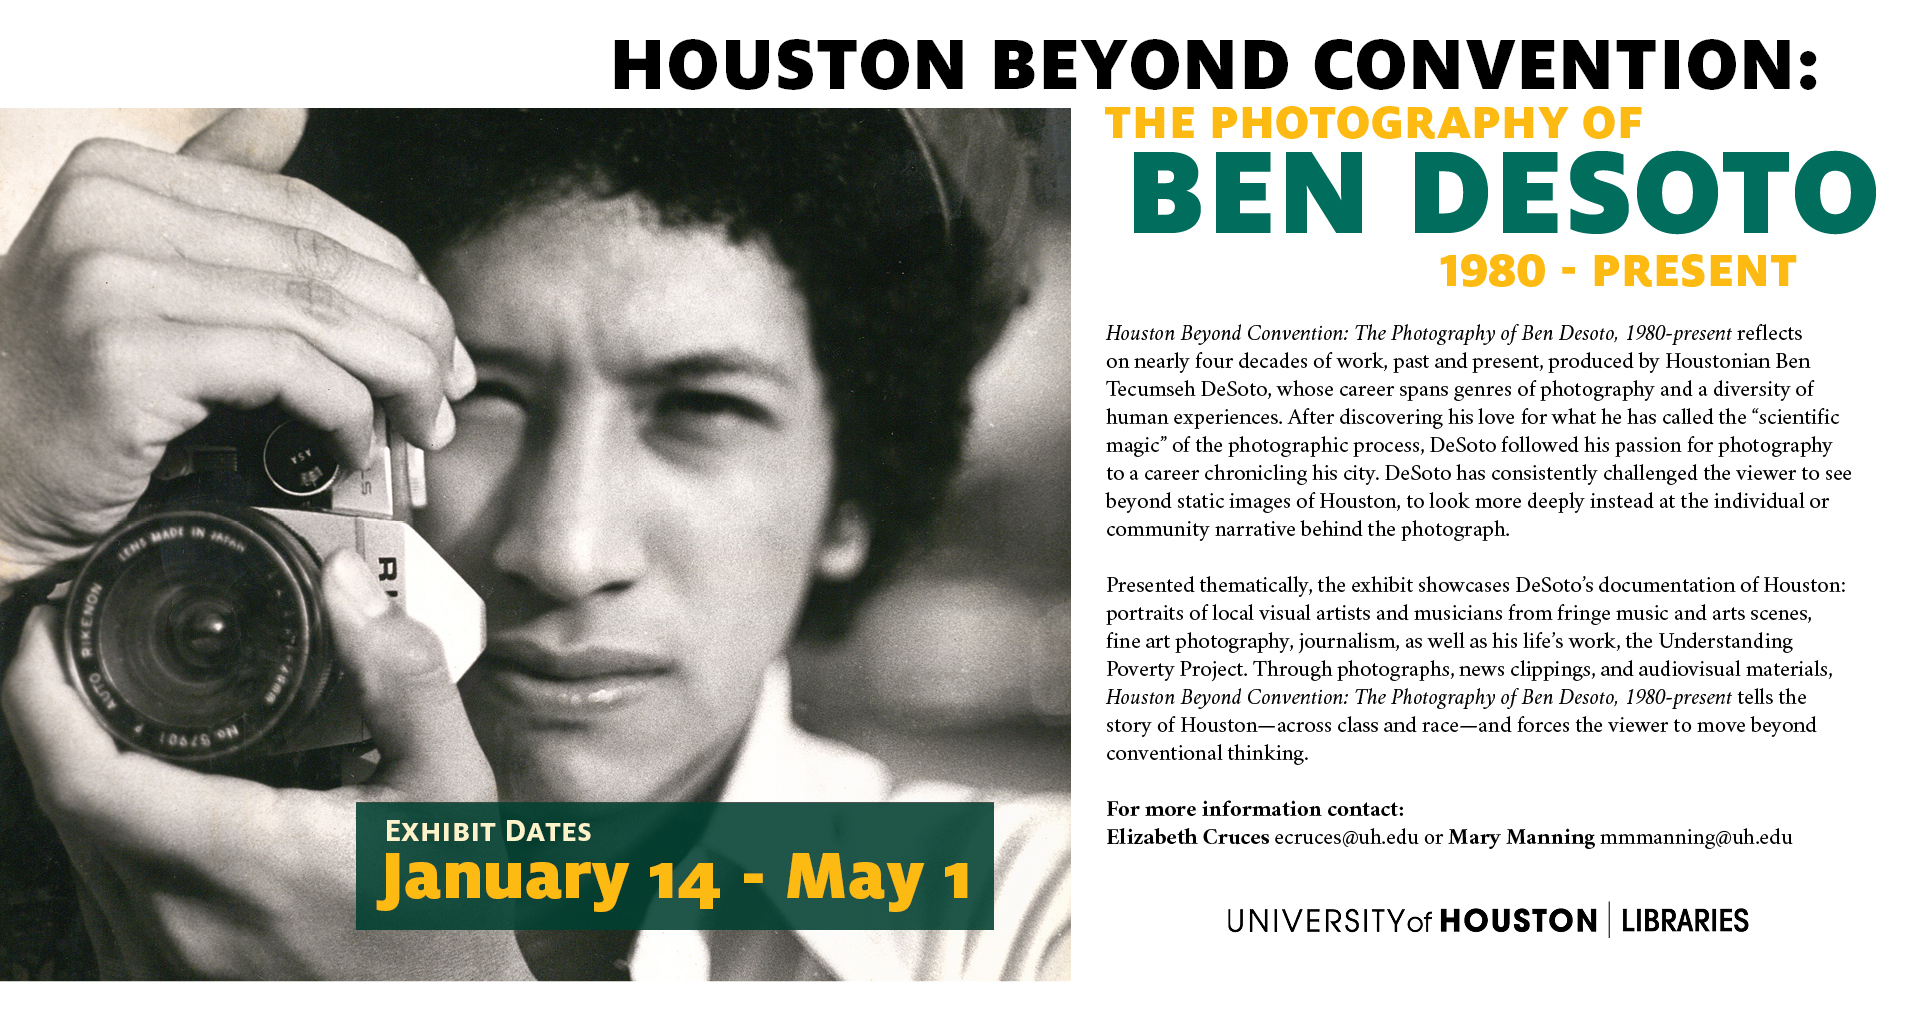 Houston Beyond Convention: The Photography of Ben DeSoto, 1980-present